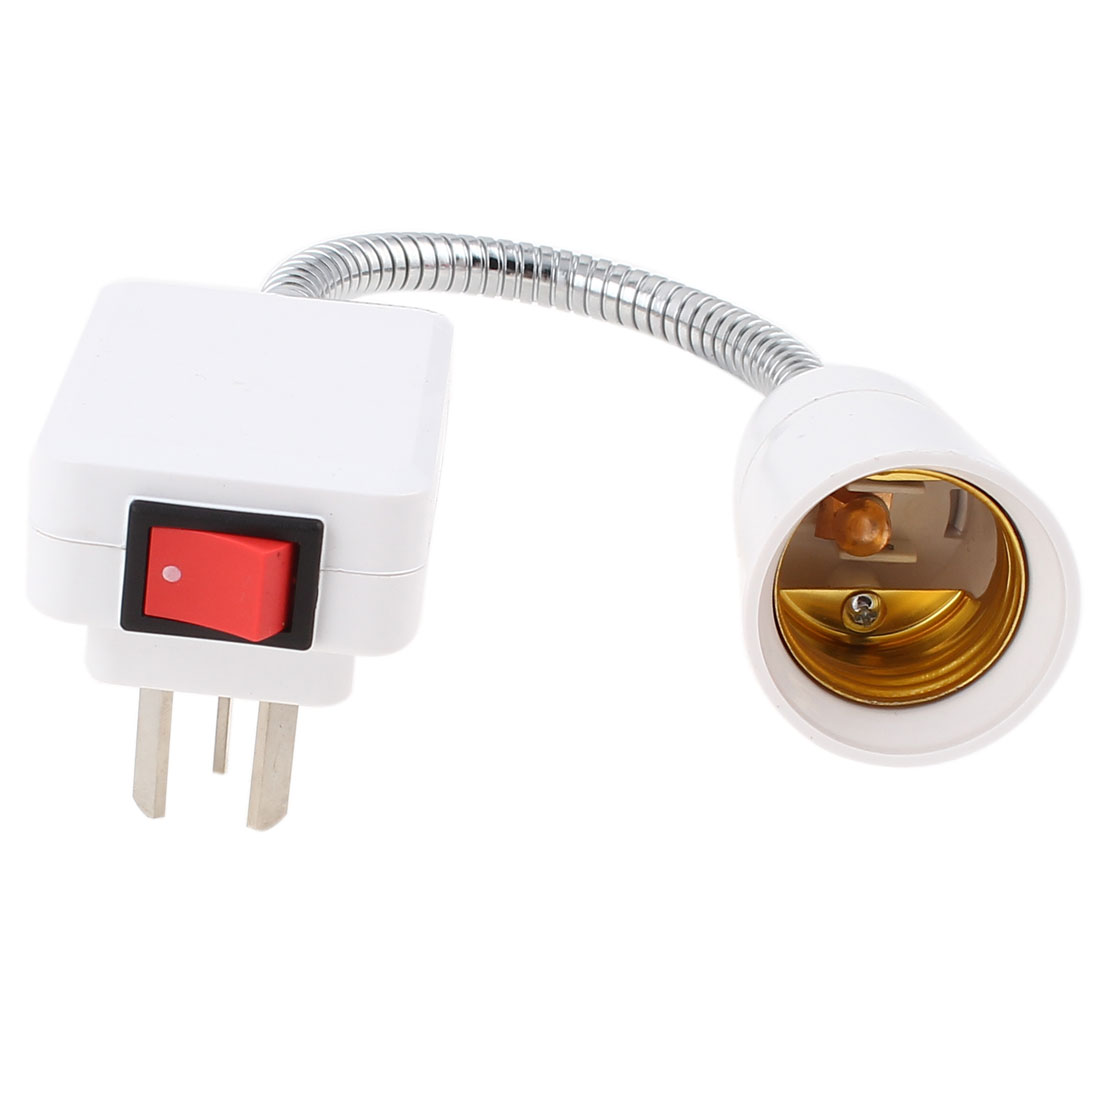 AU Plug AC 250V 13A 14cm Flexible Neck E27 Adapter Socket Light Lamp Bulb Holder Switch